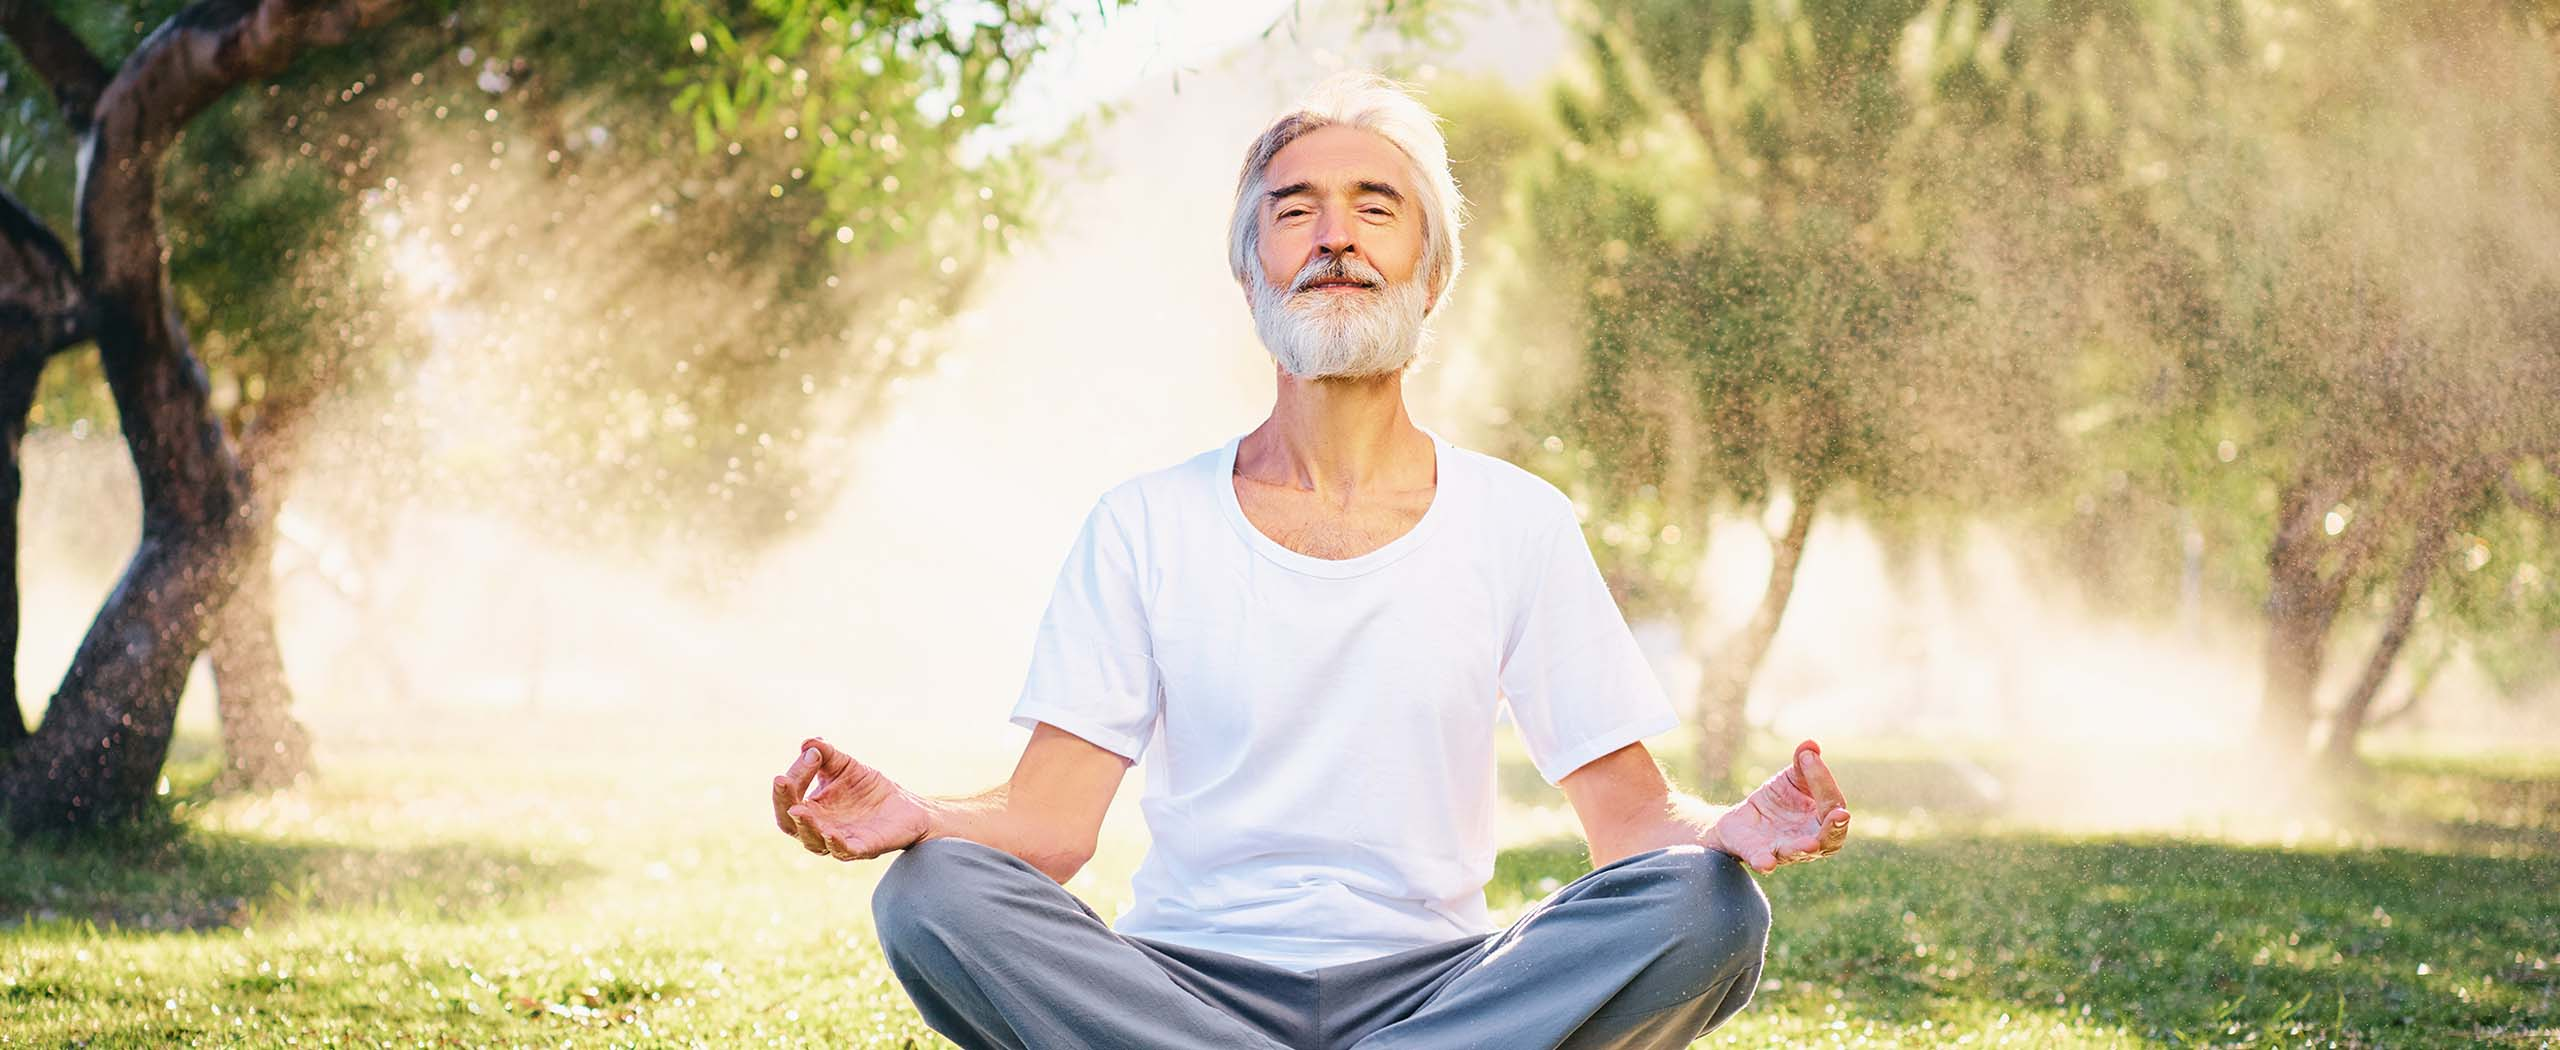 middle-aged man meditating outdoors